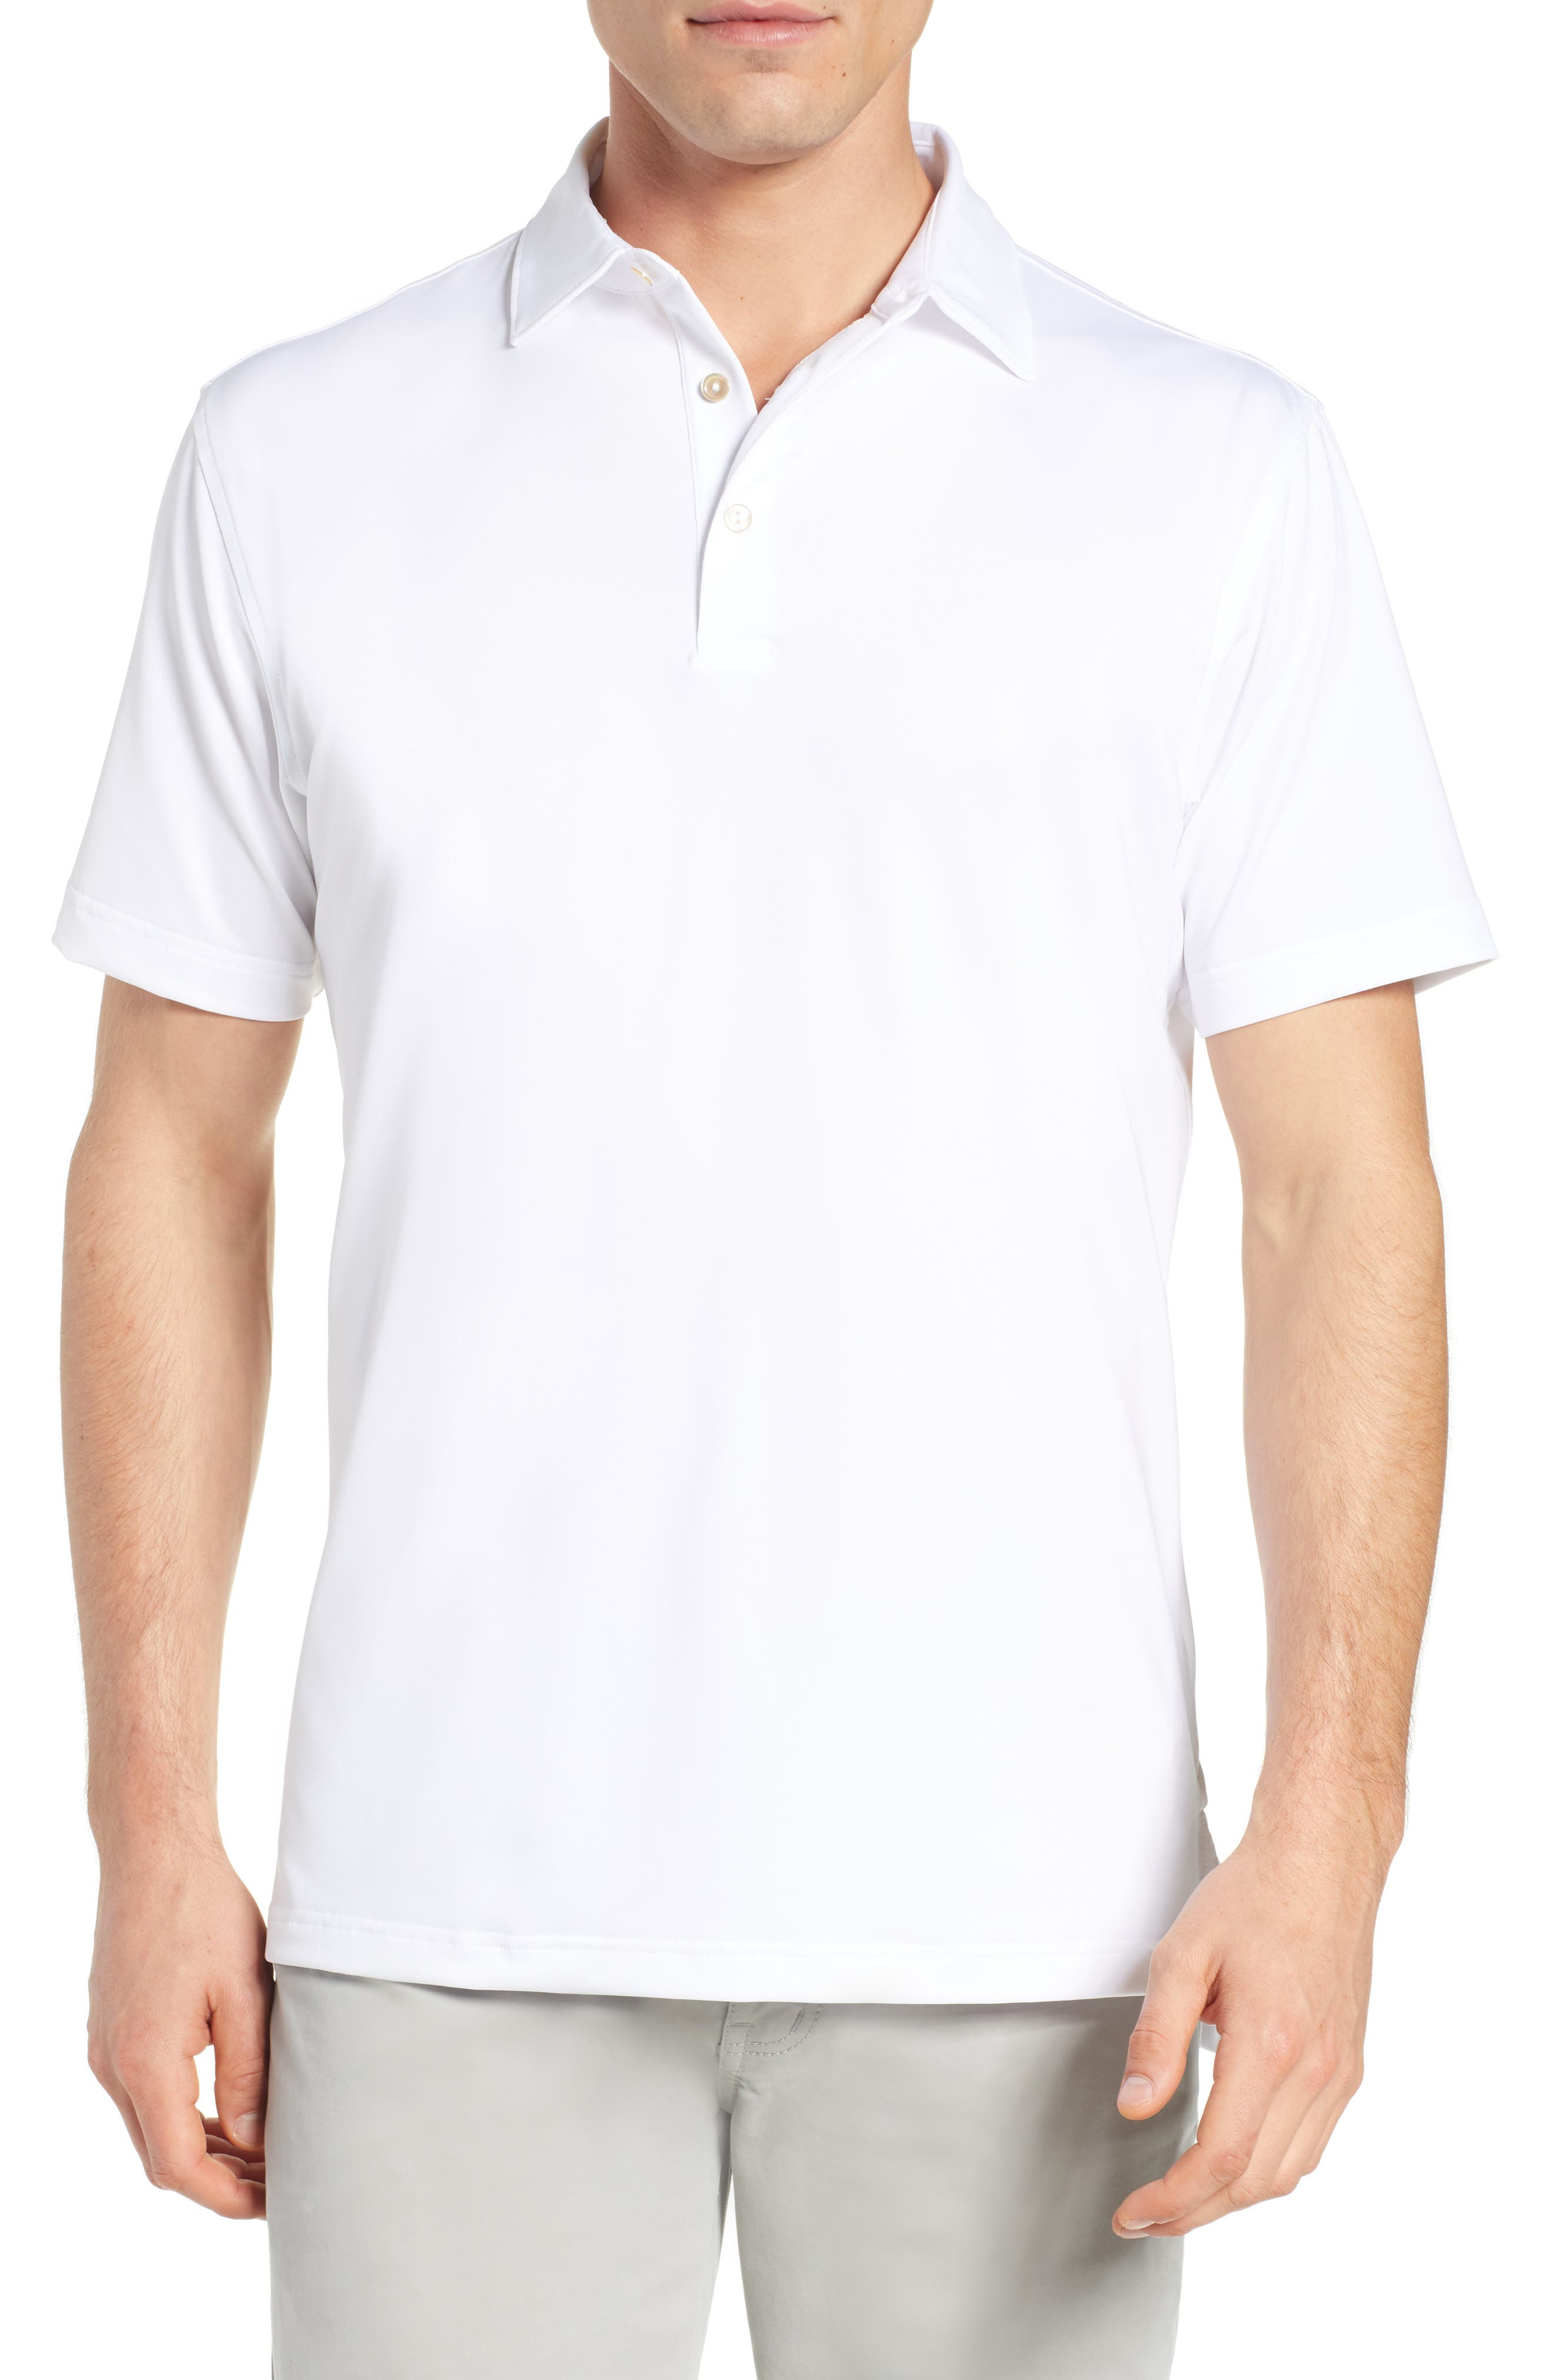 PETER MILLAR, Sean Regular Fit Stretch Jersey Polo, Main thumbnail 1, color, WHITE